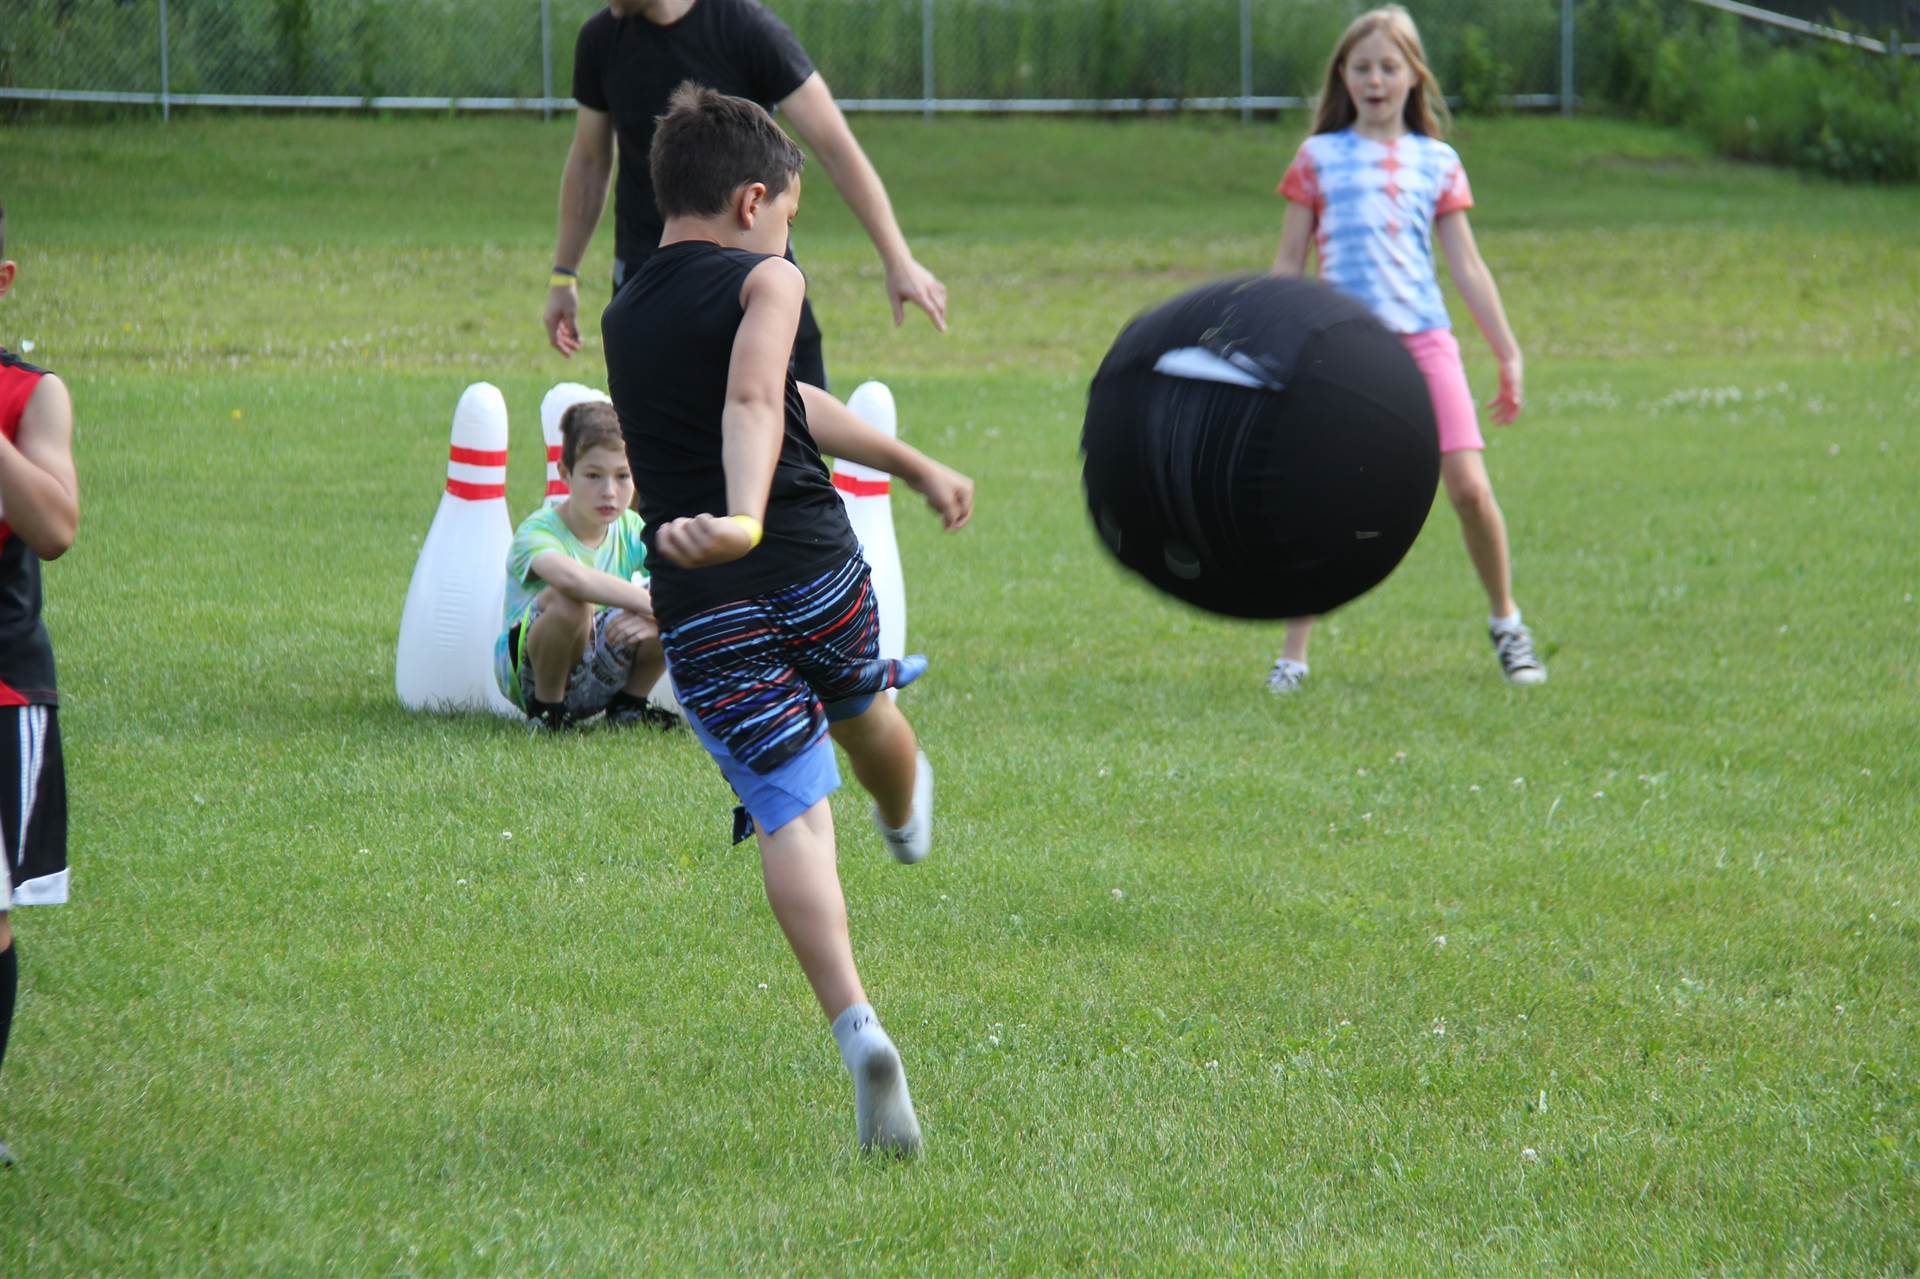 boy kicks ball for an inflatable bowling game